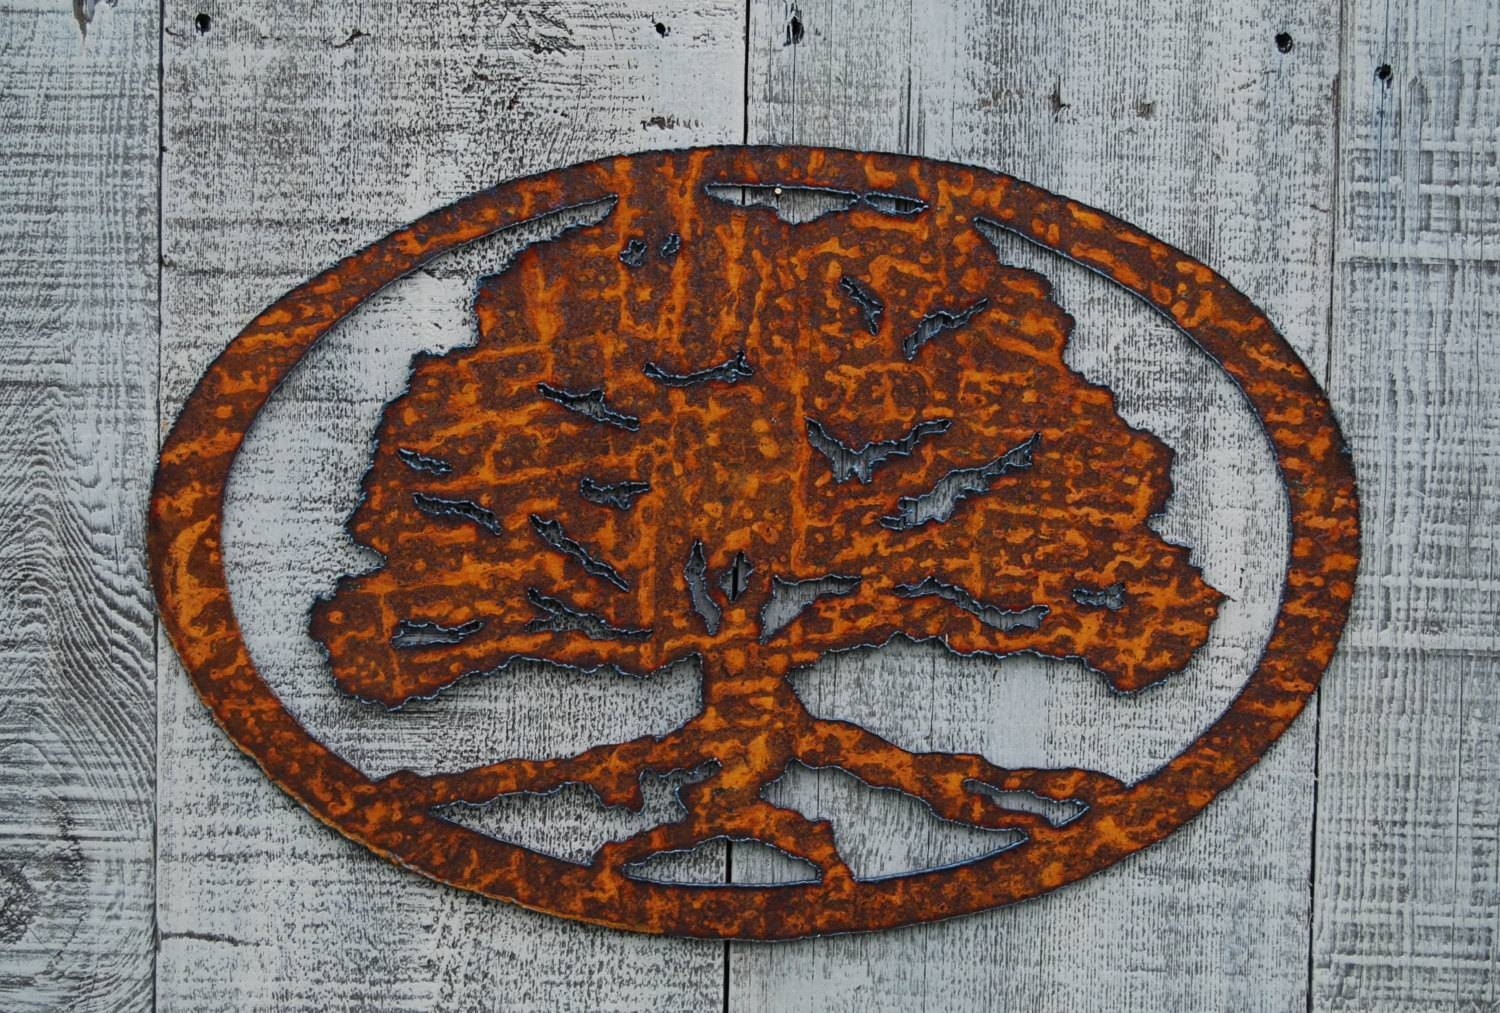 Oak Tree Rusty Metal Wall Art Intended For Newest Oak Tree Wall Art (View 19 of 30)